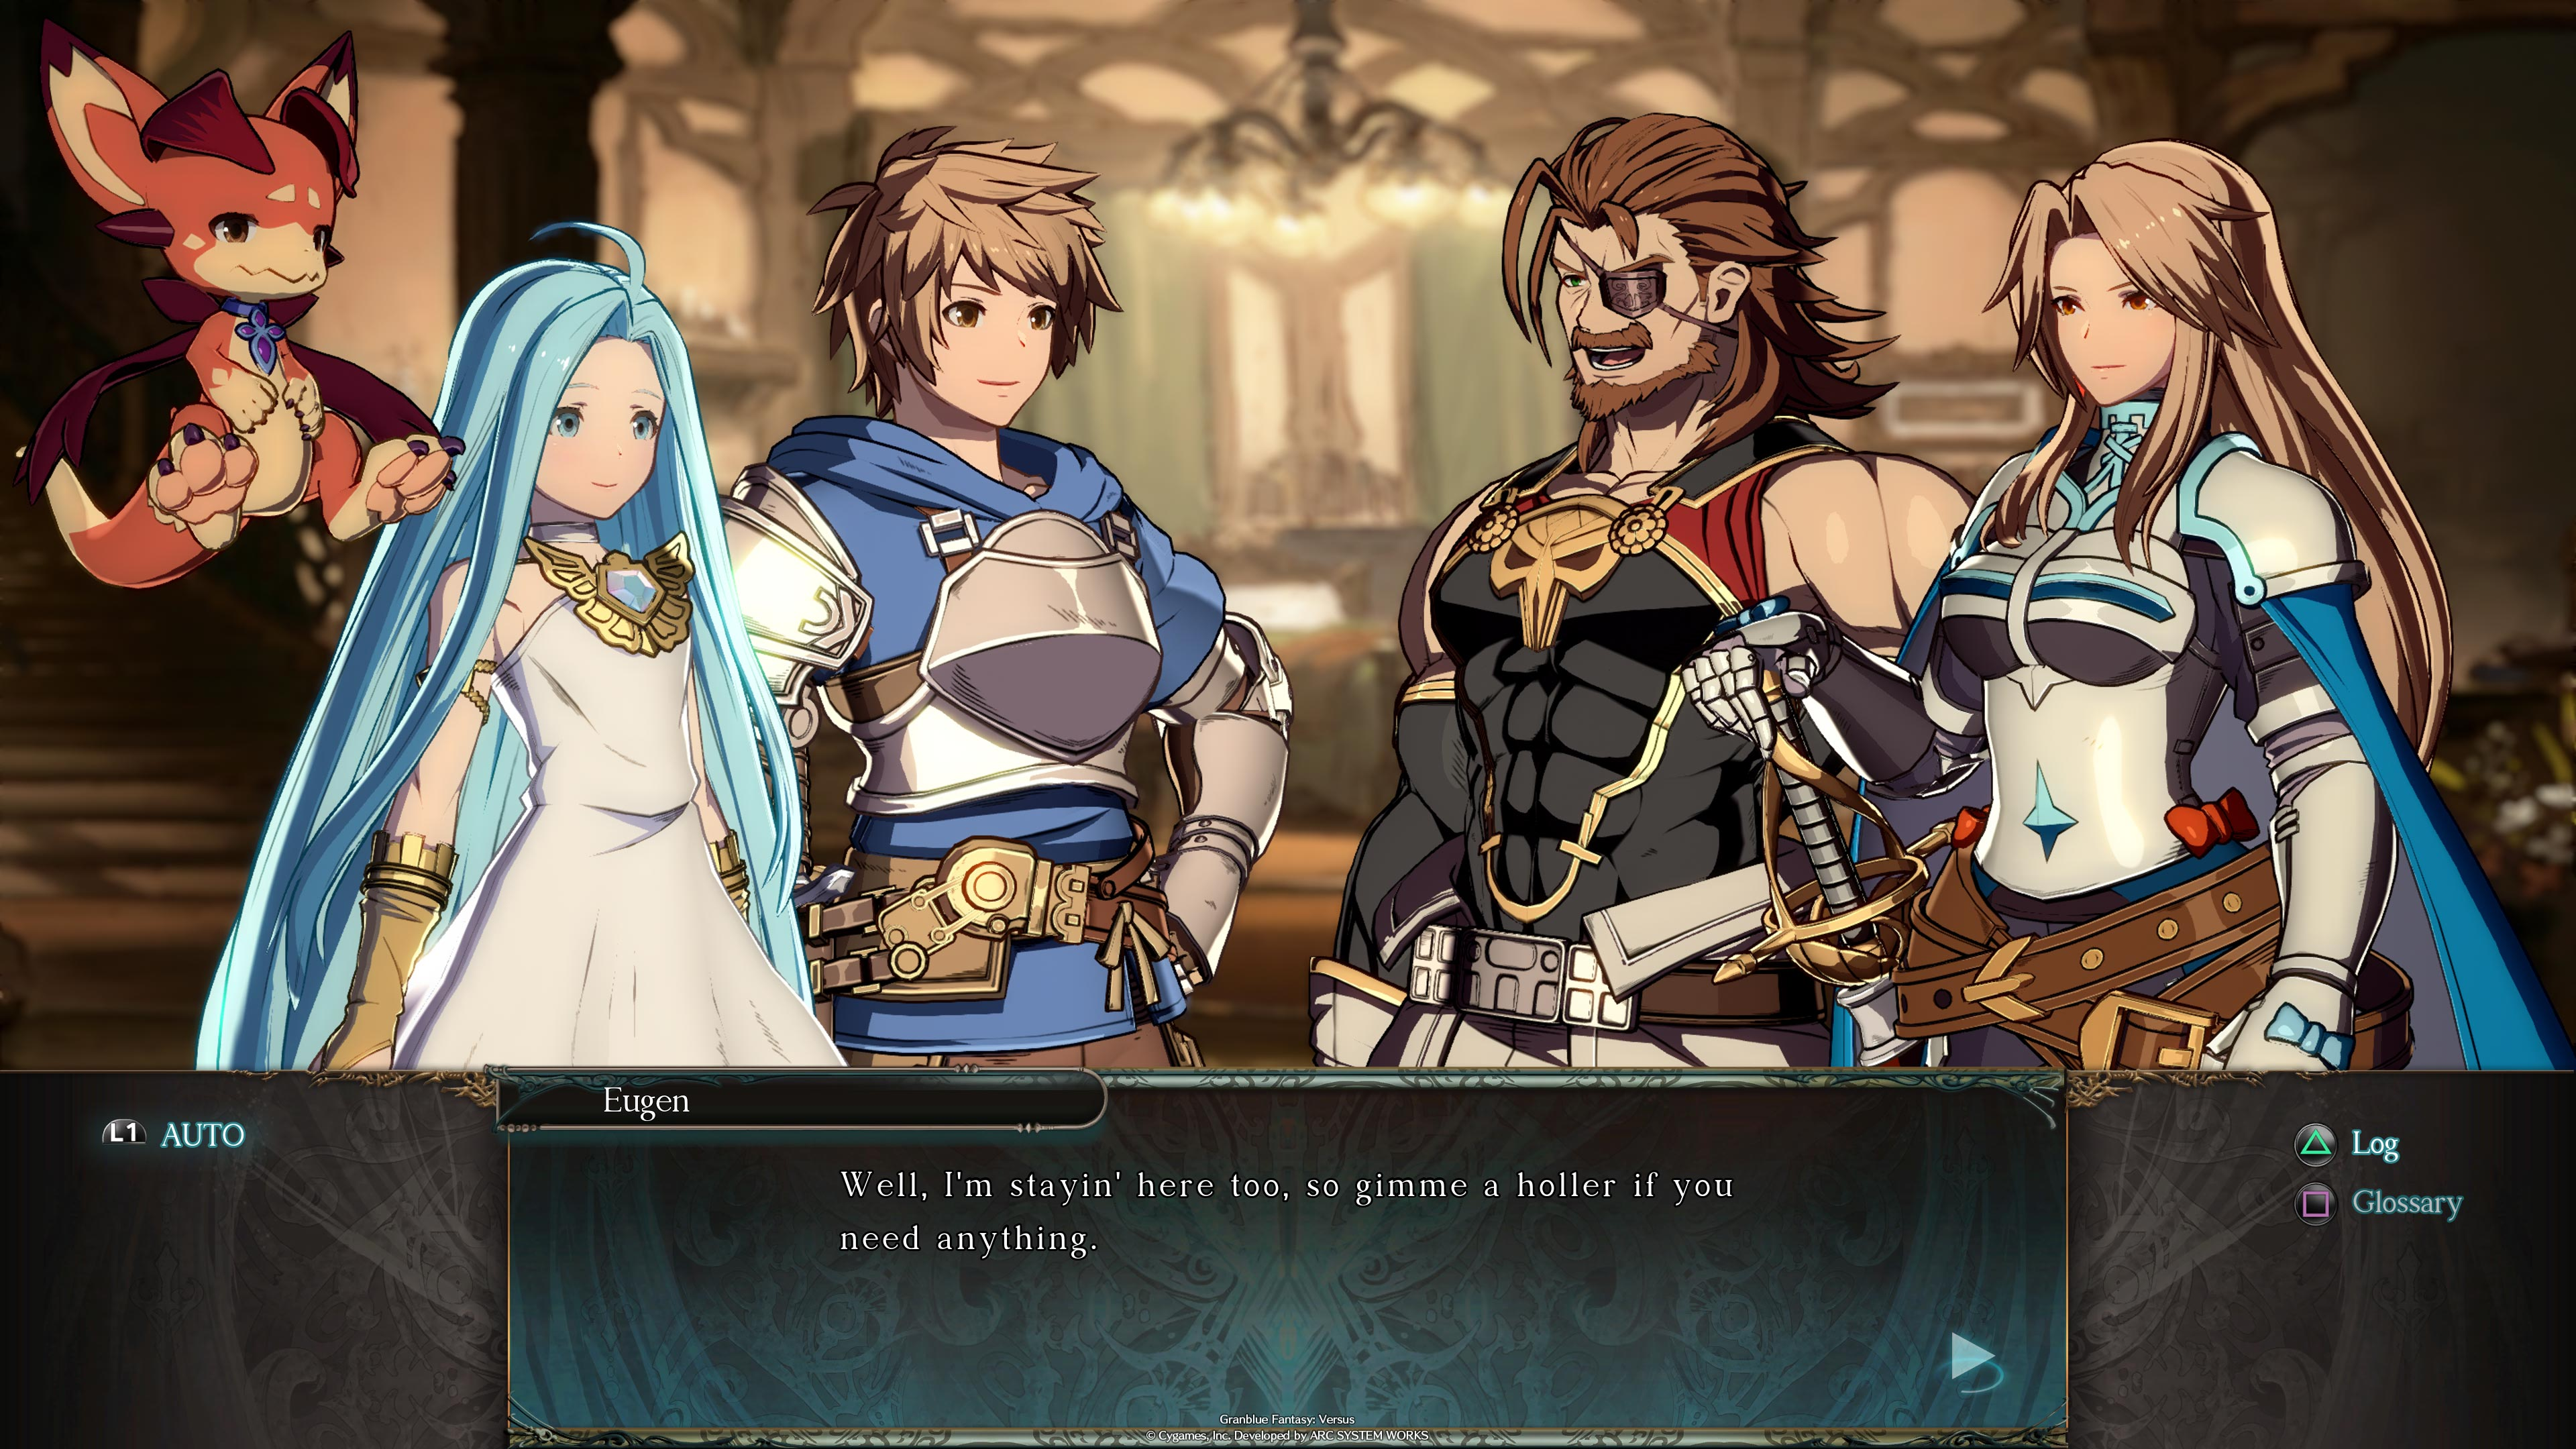 Granblue Fantasy: Versus review 2 out of 3 image gallery